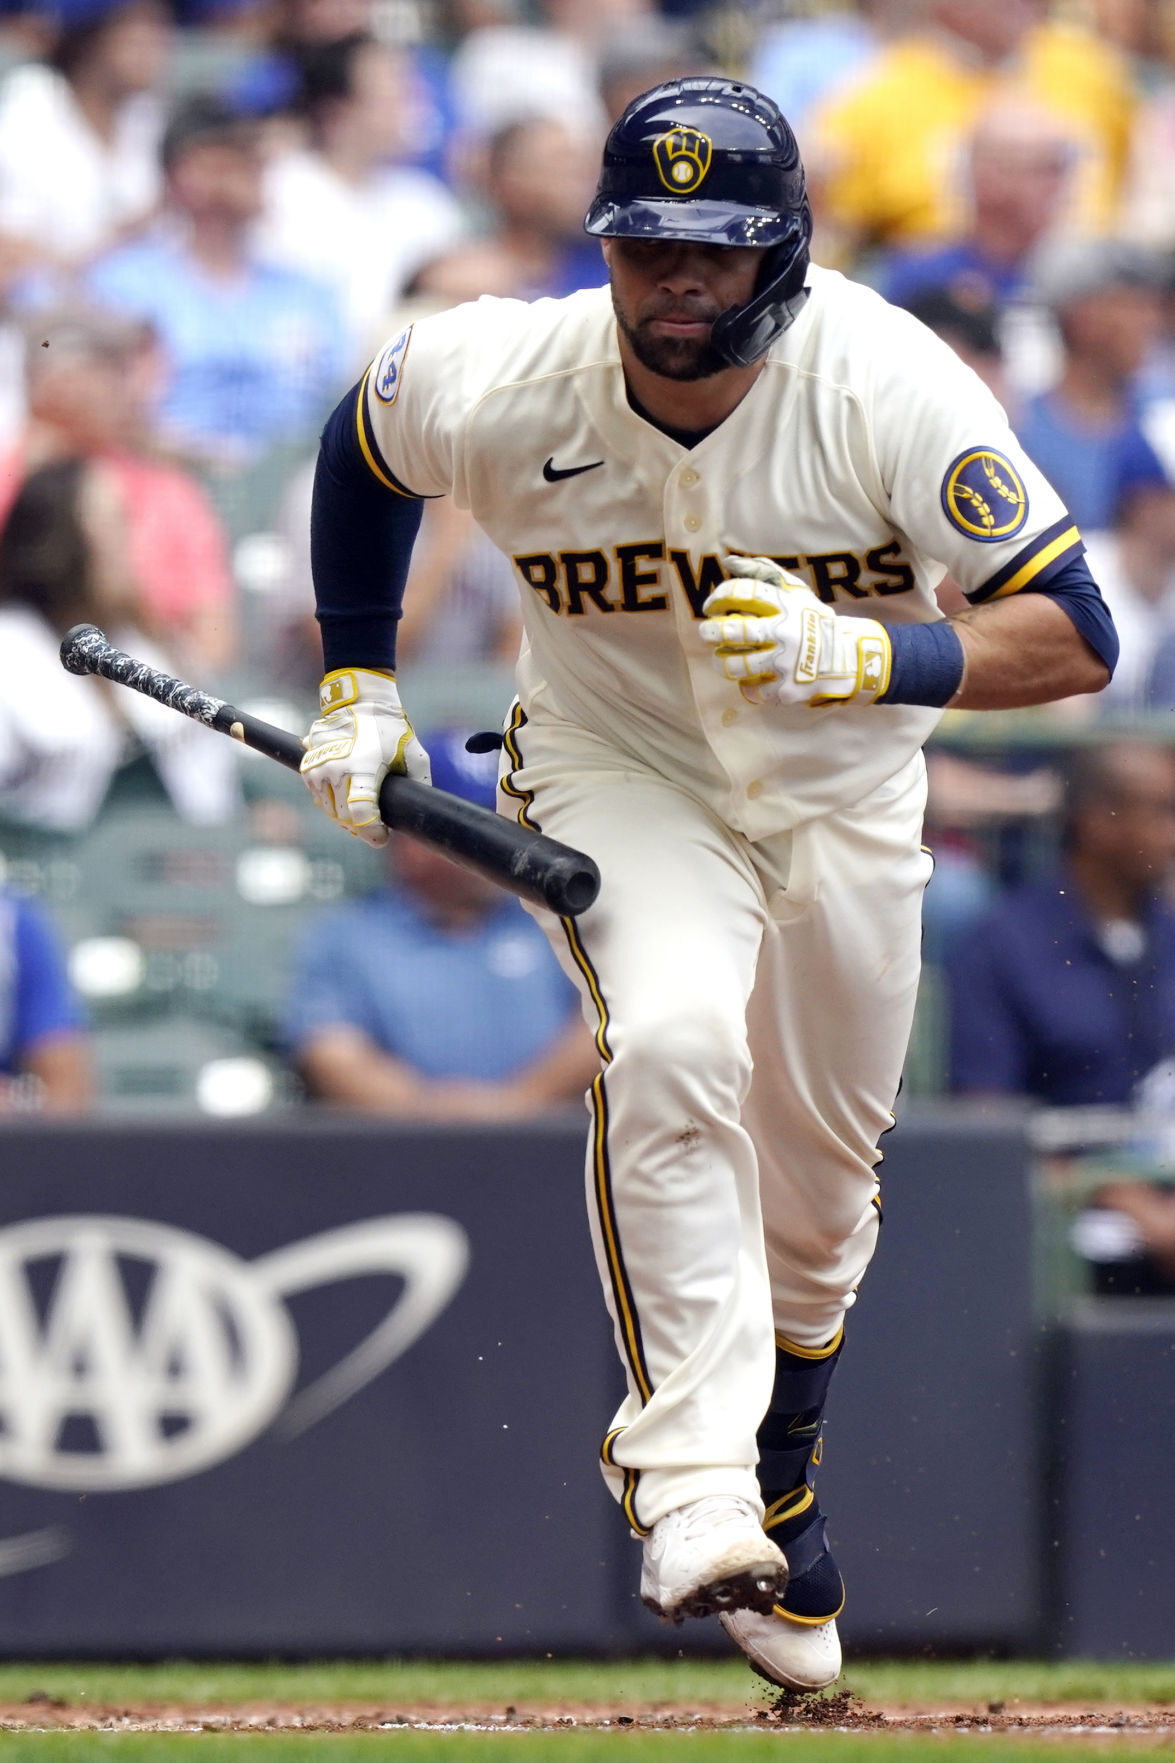 Brewers photo 7-20